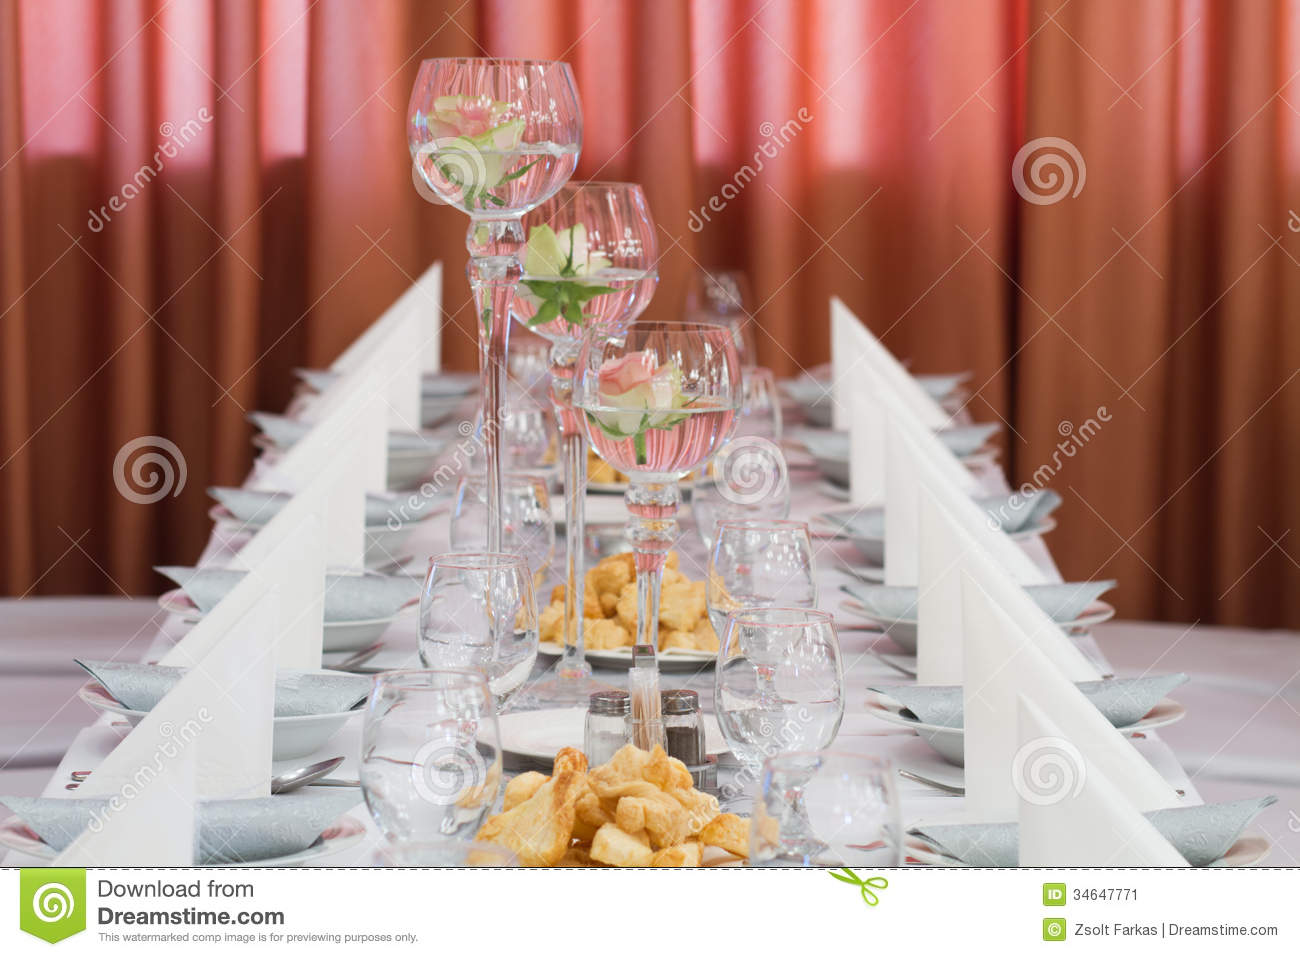 Elegant Table Setting For Wedding Stock Image - Image of plate ...